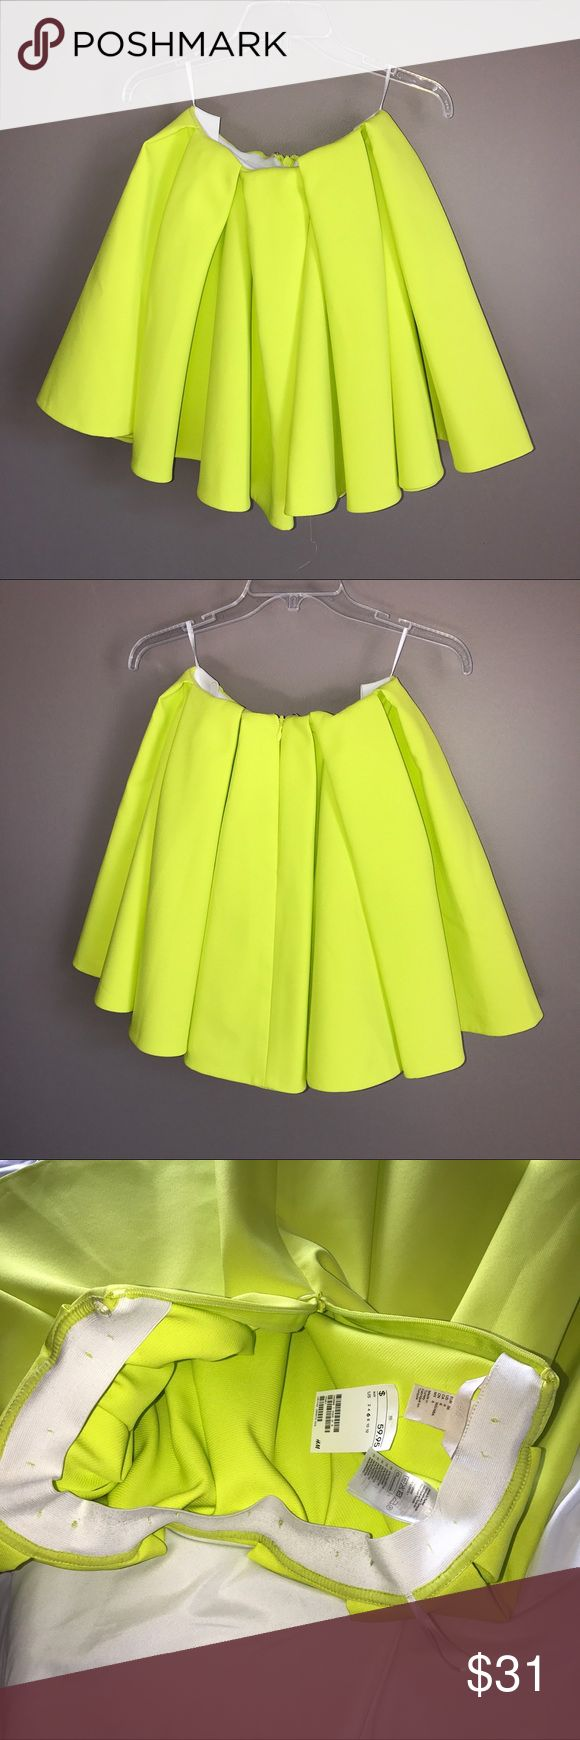 NWT H&M Neon Yellow Skirt Size 6 from H&M. Fits more like a 2 H&M Skirts